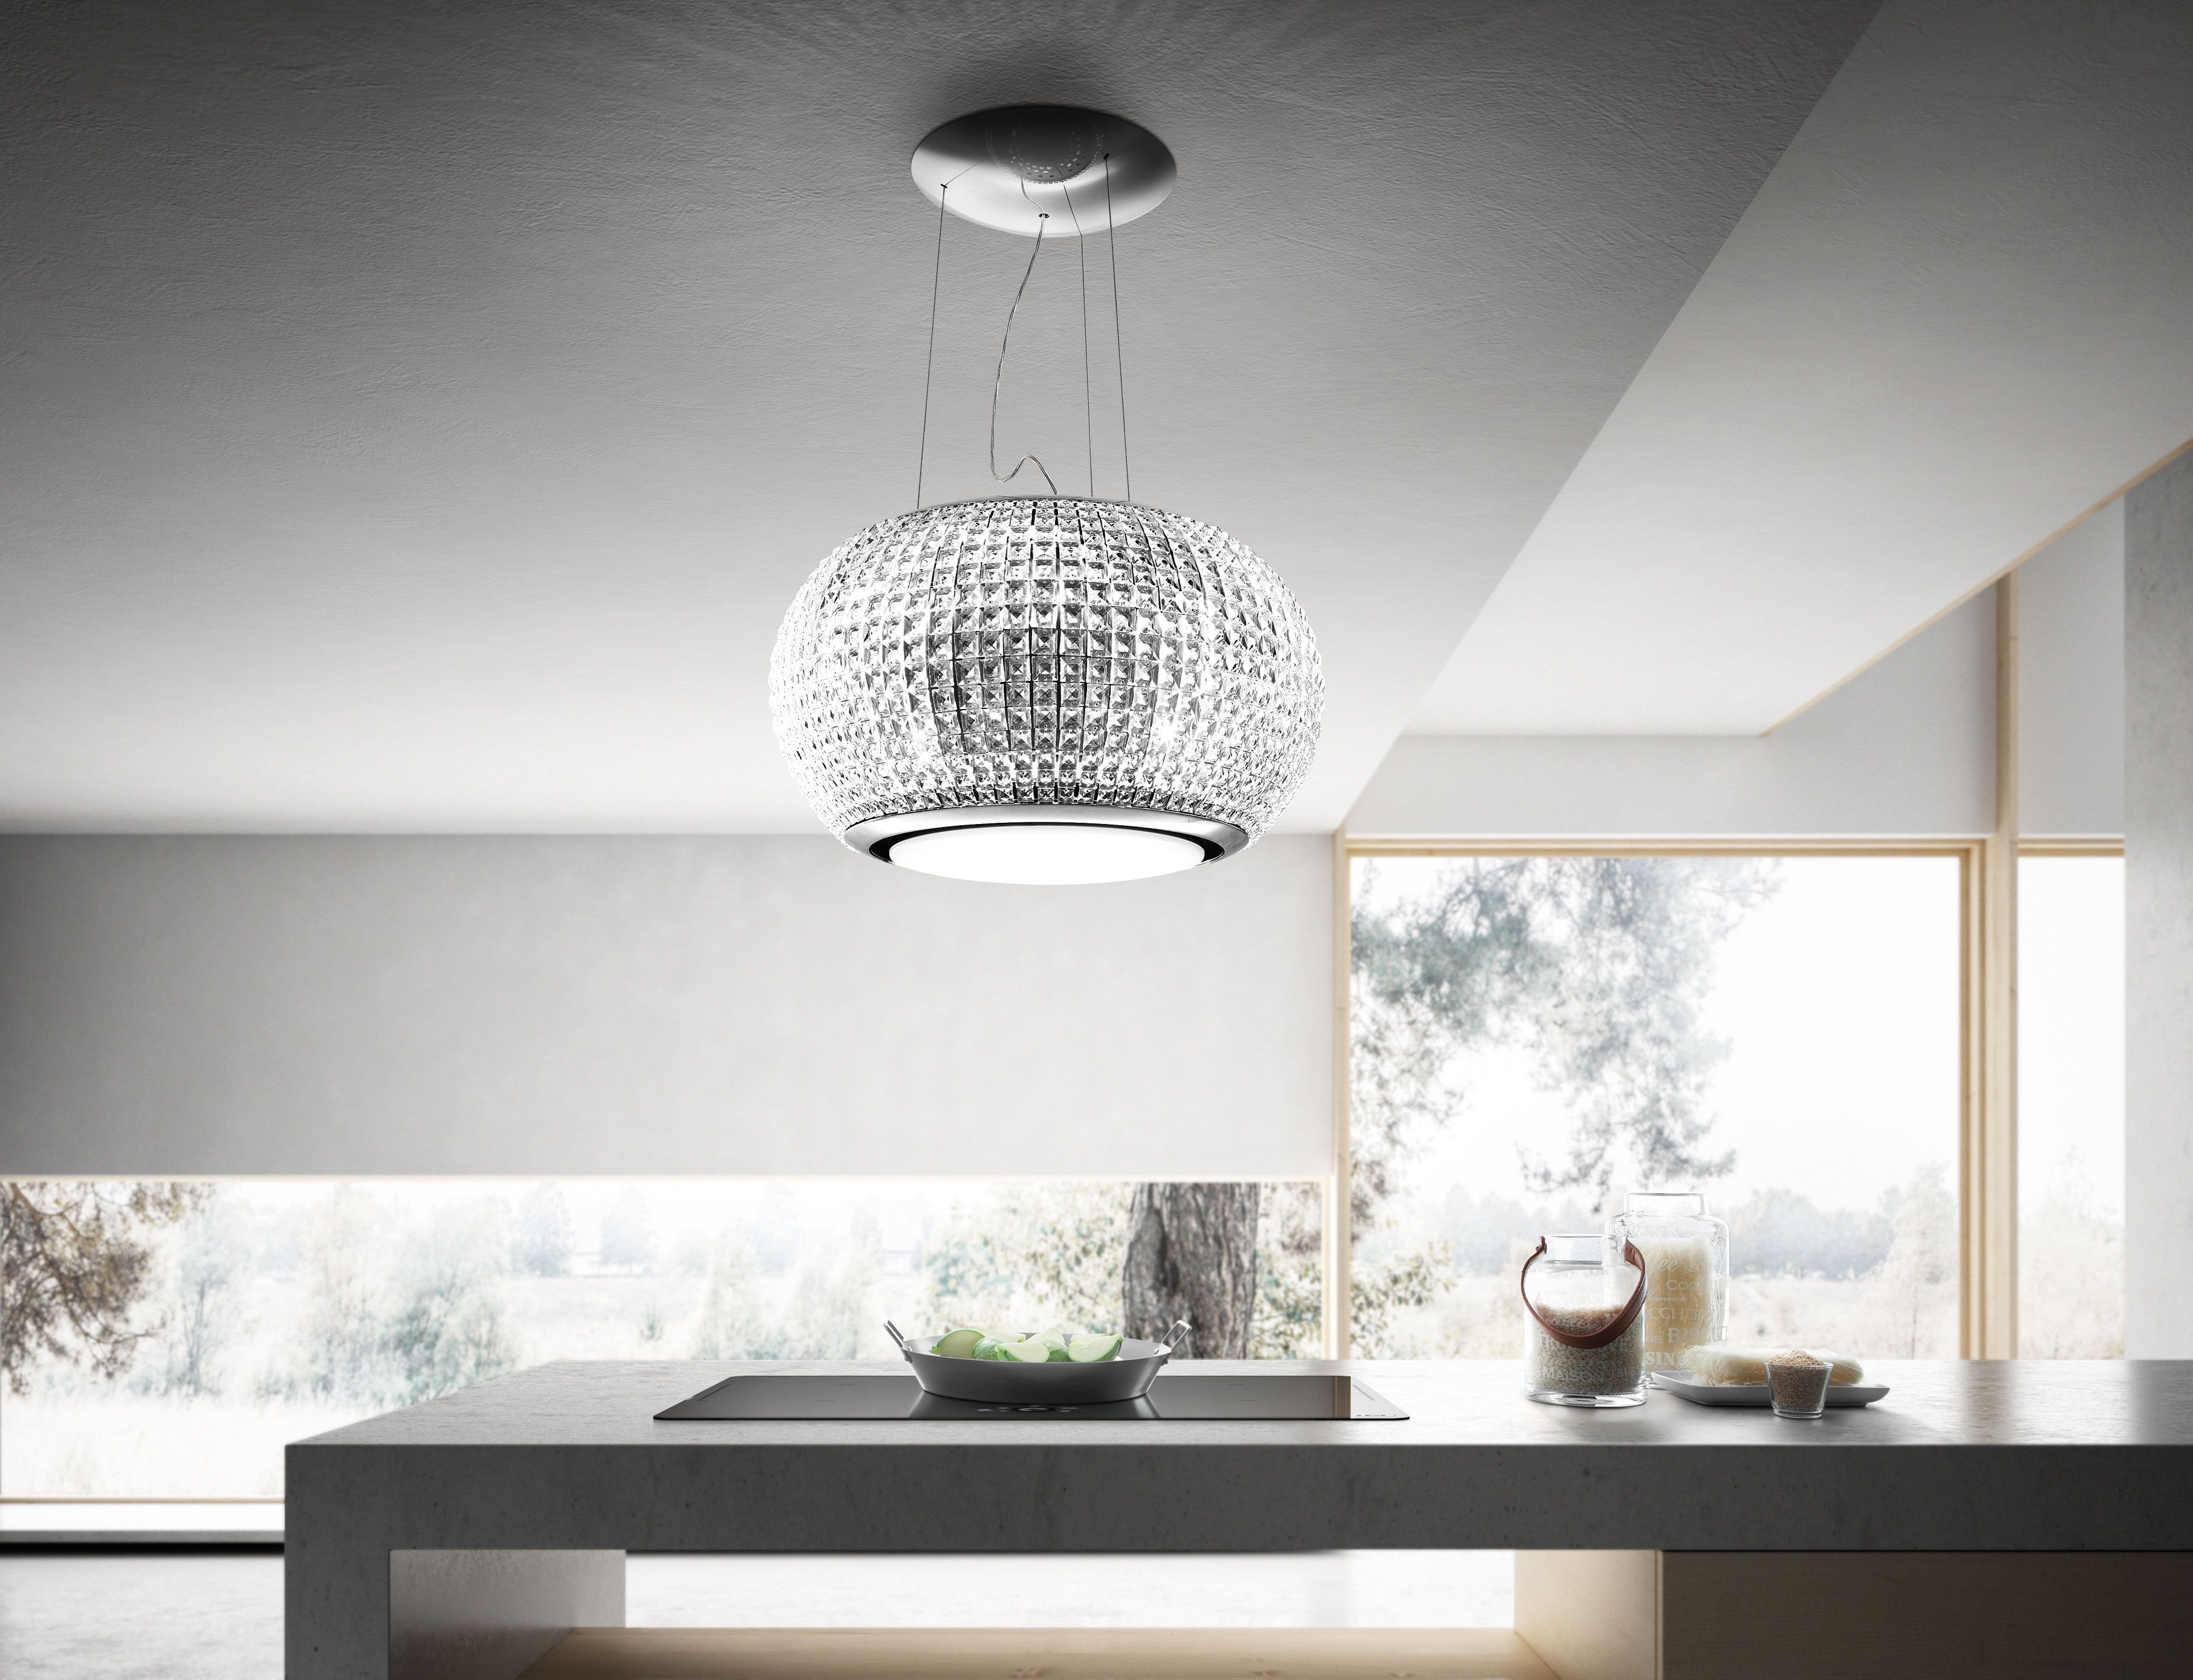 Interstellar Is The New Suspended Elica Hood That Is The Ideal Size 65 Cm For Island Kitchen Installation Its R Kitchen Lighting Home Decor Open Living Room